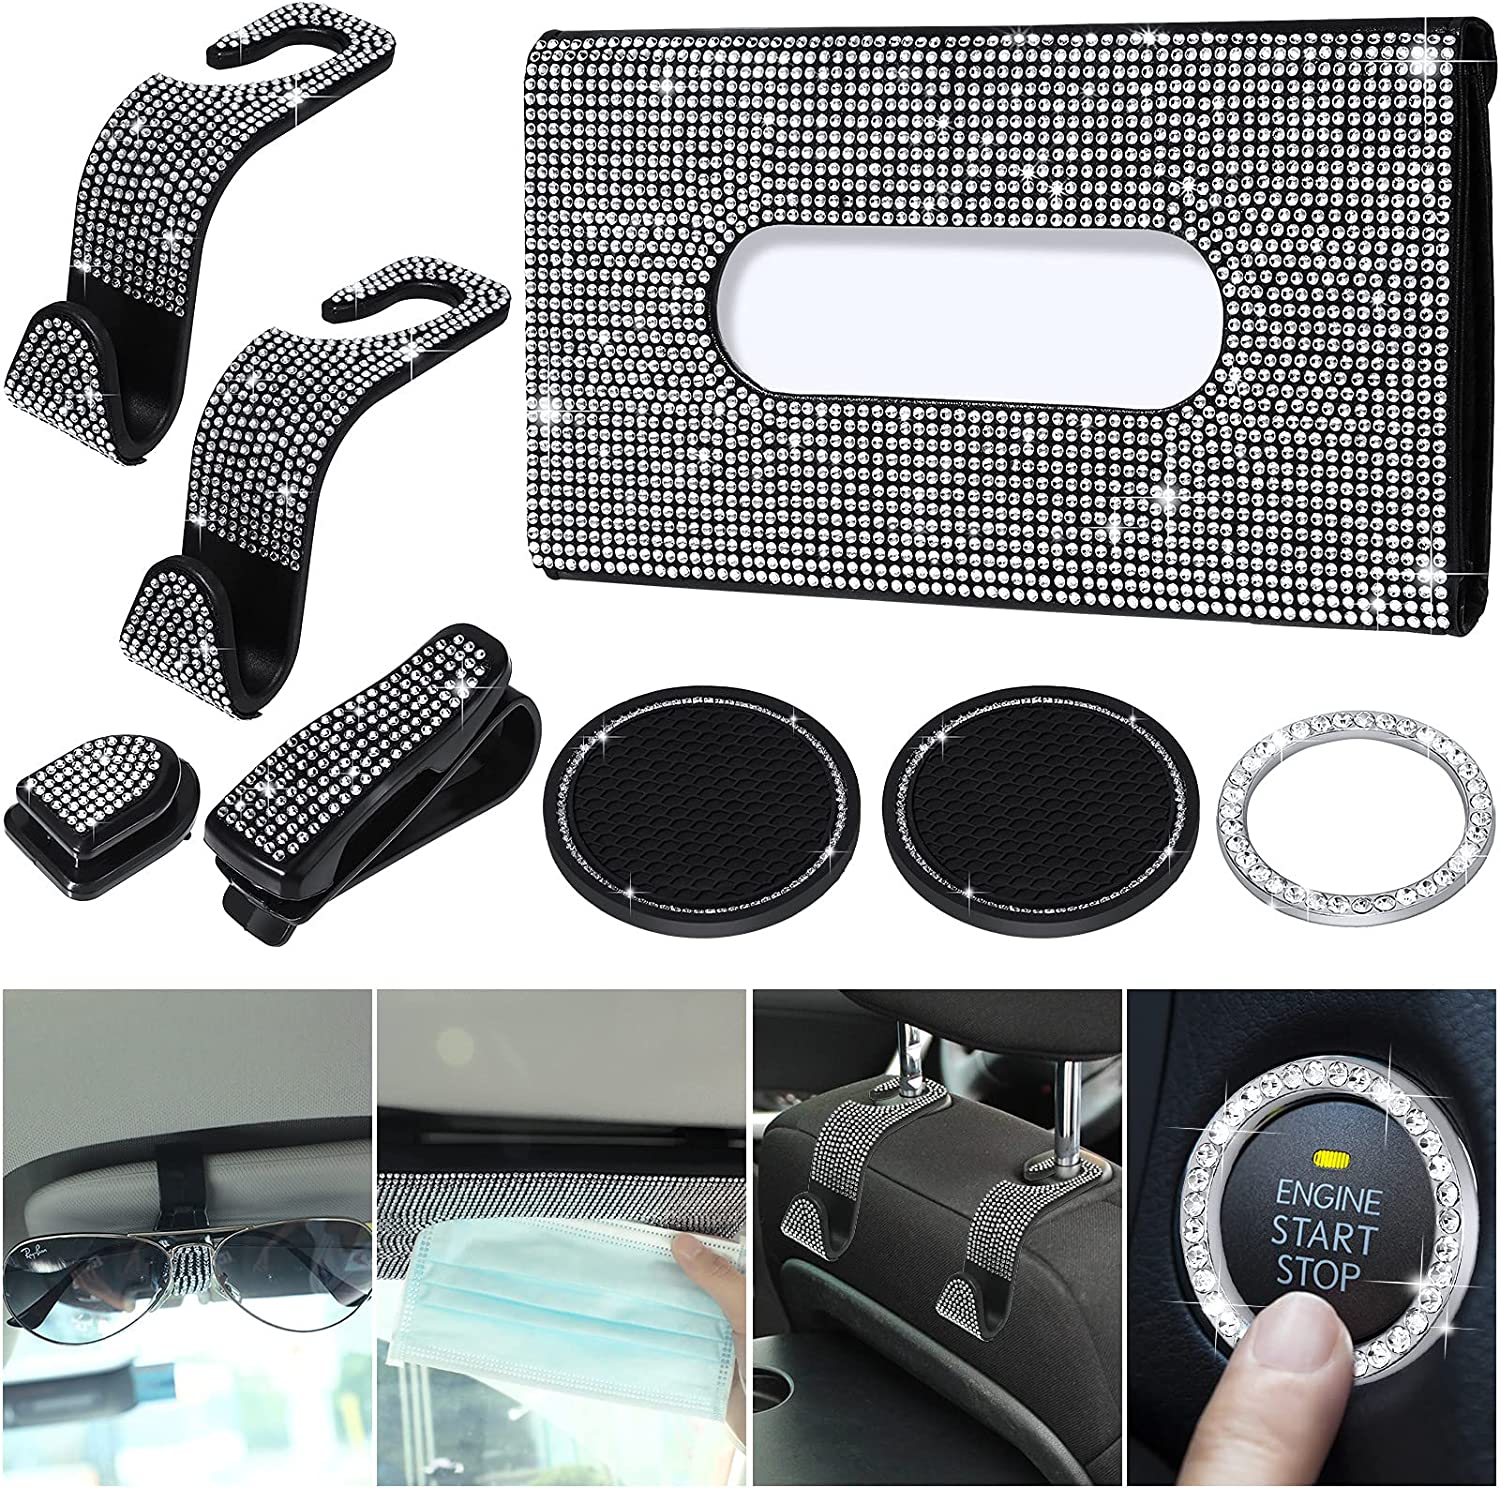 Bling Car Accessories Include Auto T Holder Sunglasses free Max 75% OFF Visor